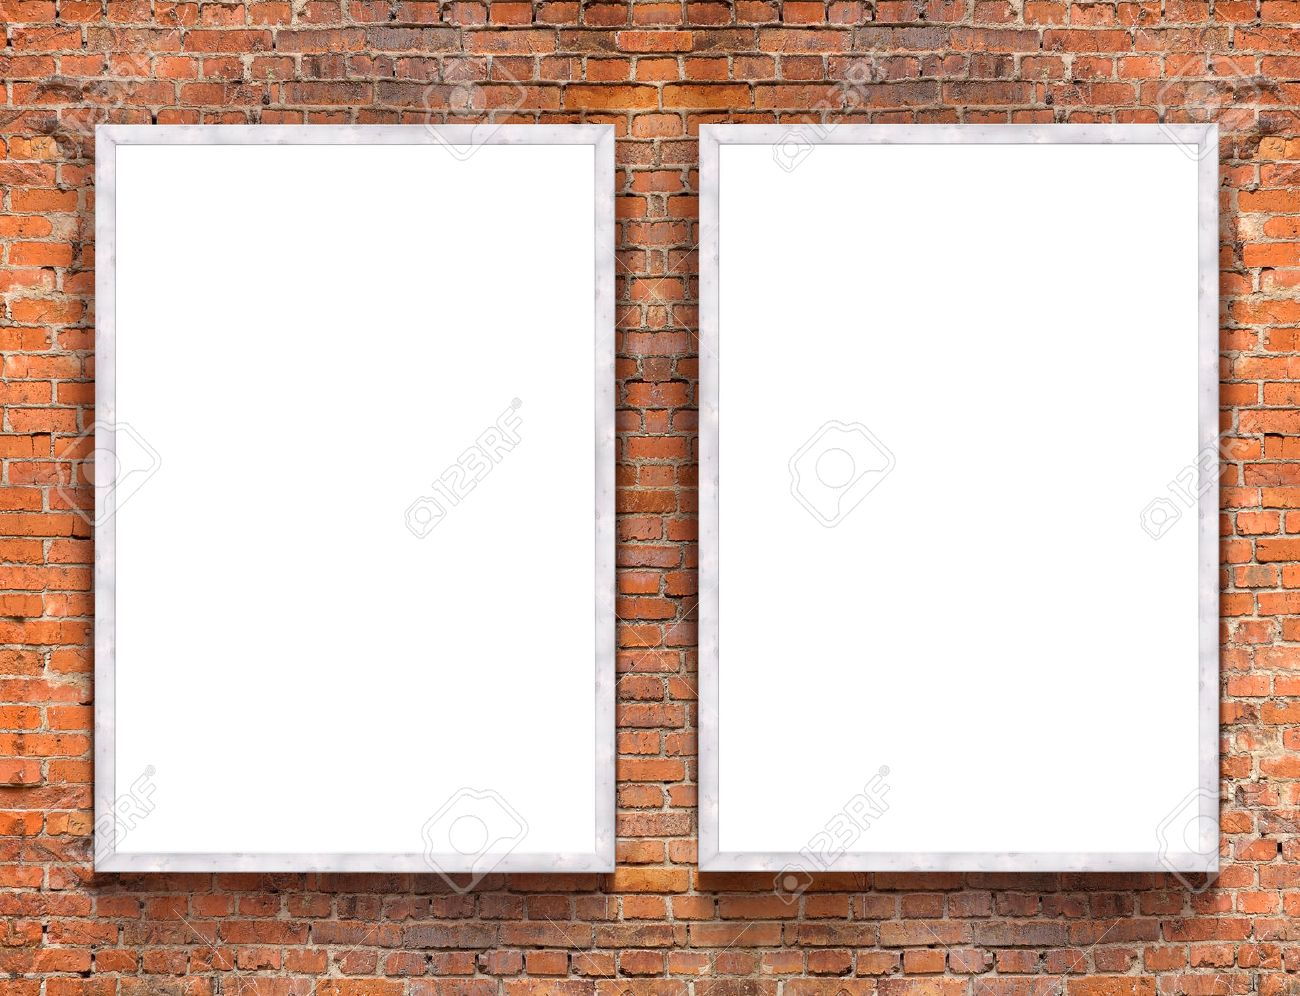 Two Blank Banners With Wooden Frame On Brick Wall Background Stock ...